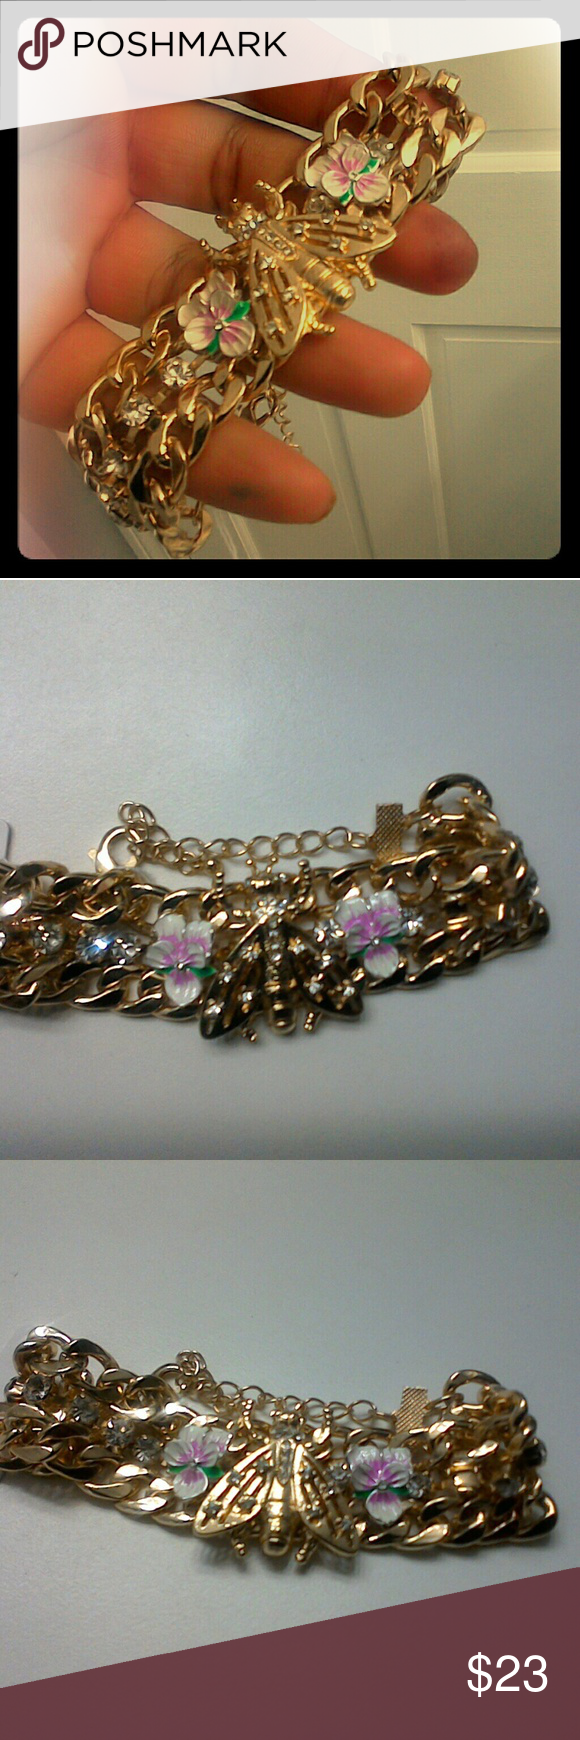 Gold chain bracelet with bee and flower design same as title